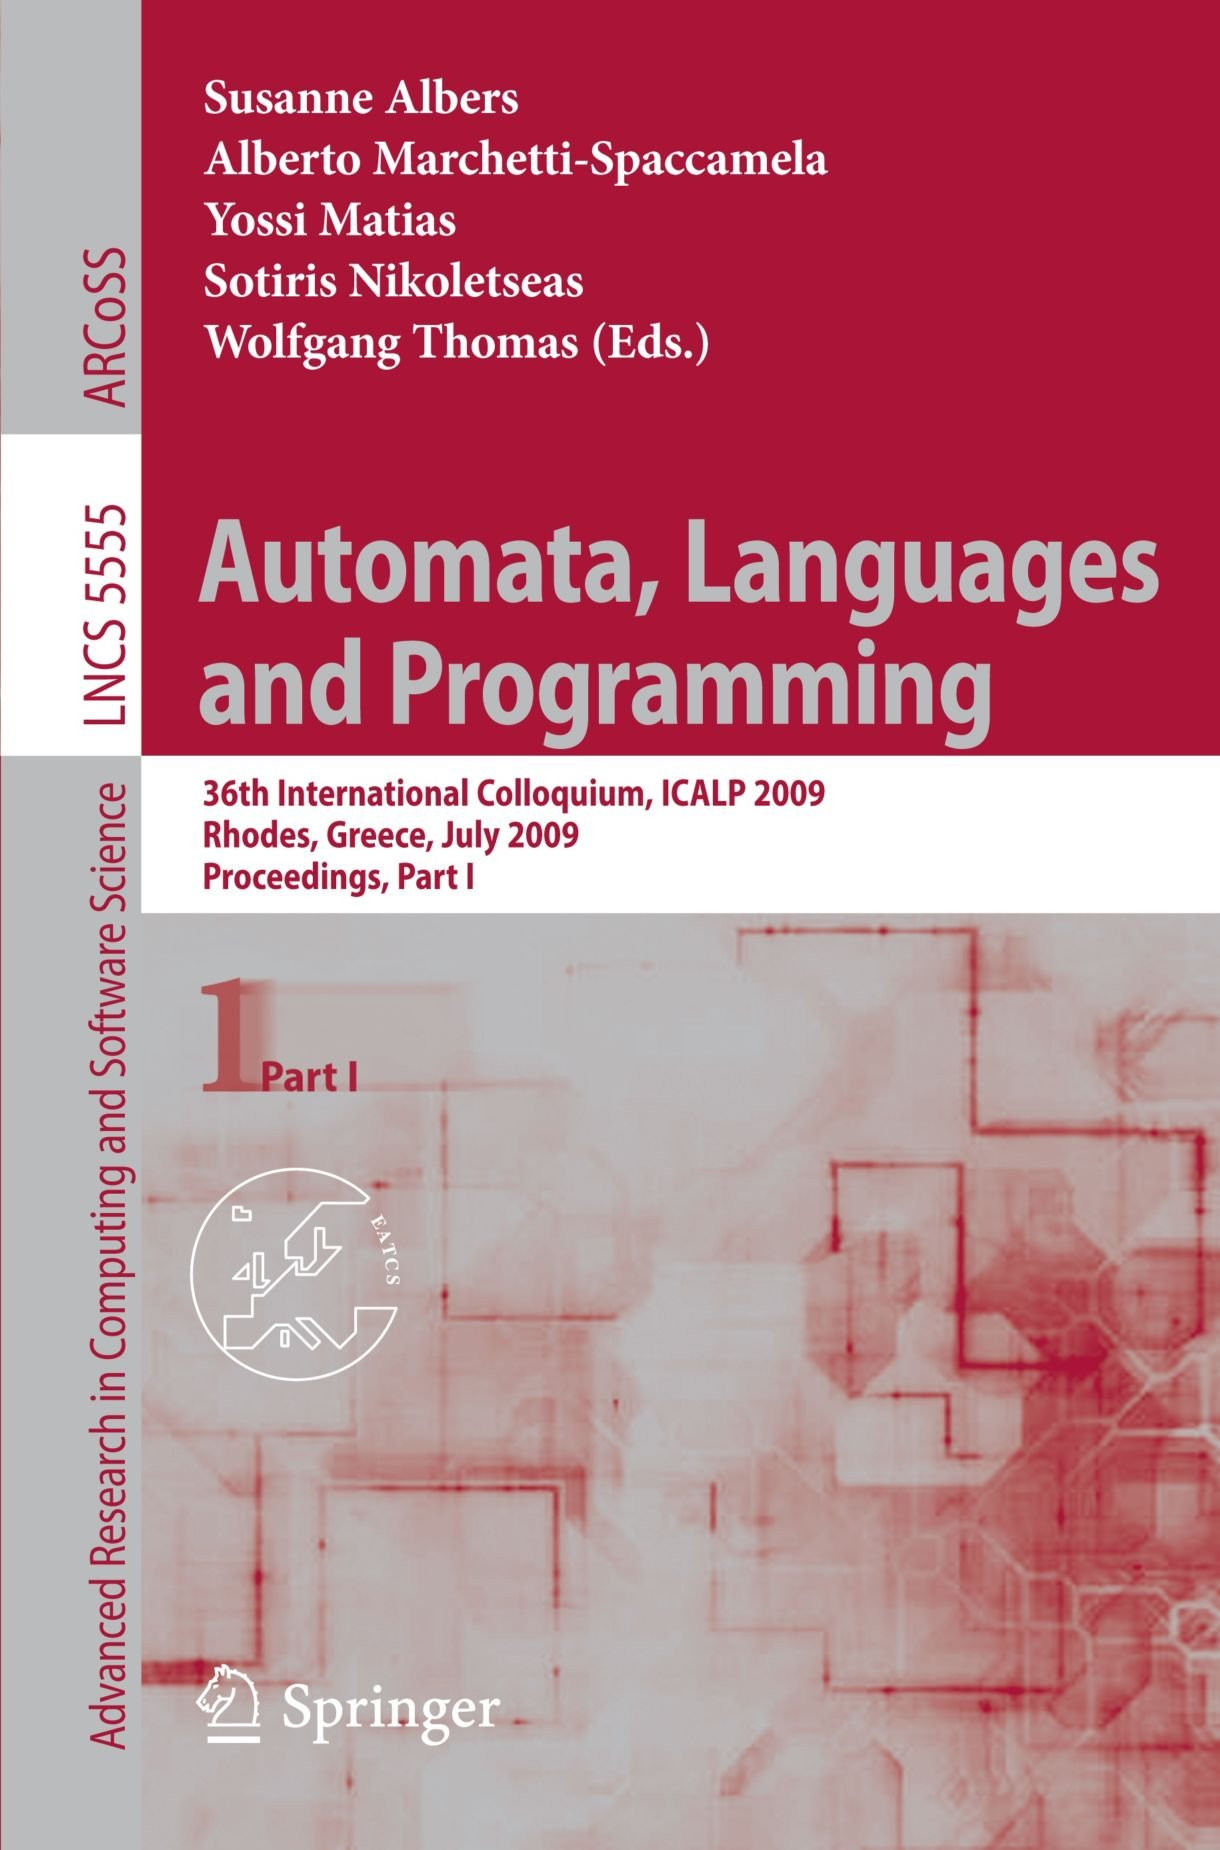 Automata, Languages and Programming: 36th International Colloquium, ICALP 2009, Rhodes, Greece, July 5-12, 2009, Proceedings, Part I (Lecture Notes in Computer Science)